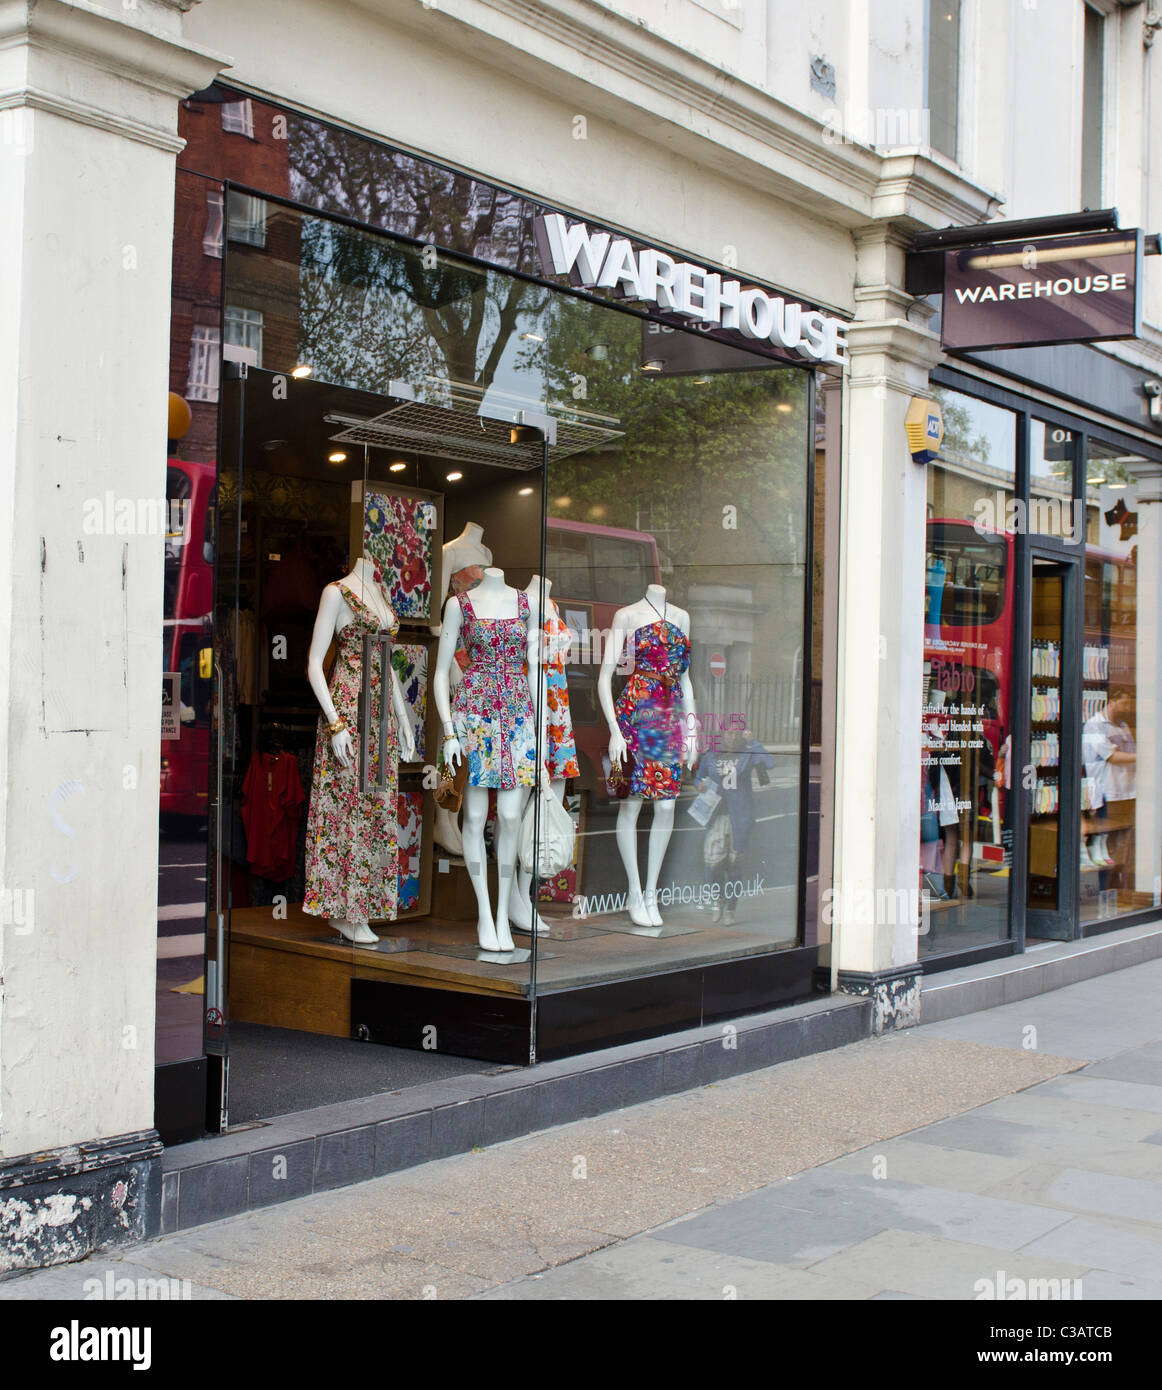 Warehouse retail womens fashion clothes store  King's Road Chelsea London Uk Kate Middleton seen buying clothes - Stock Image